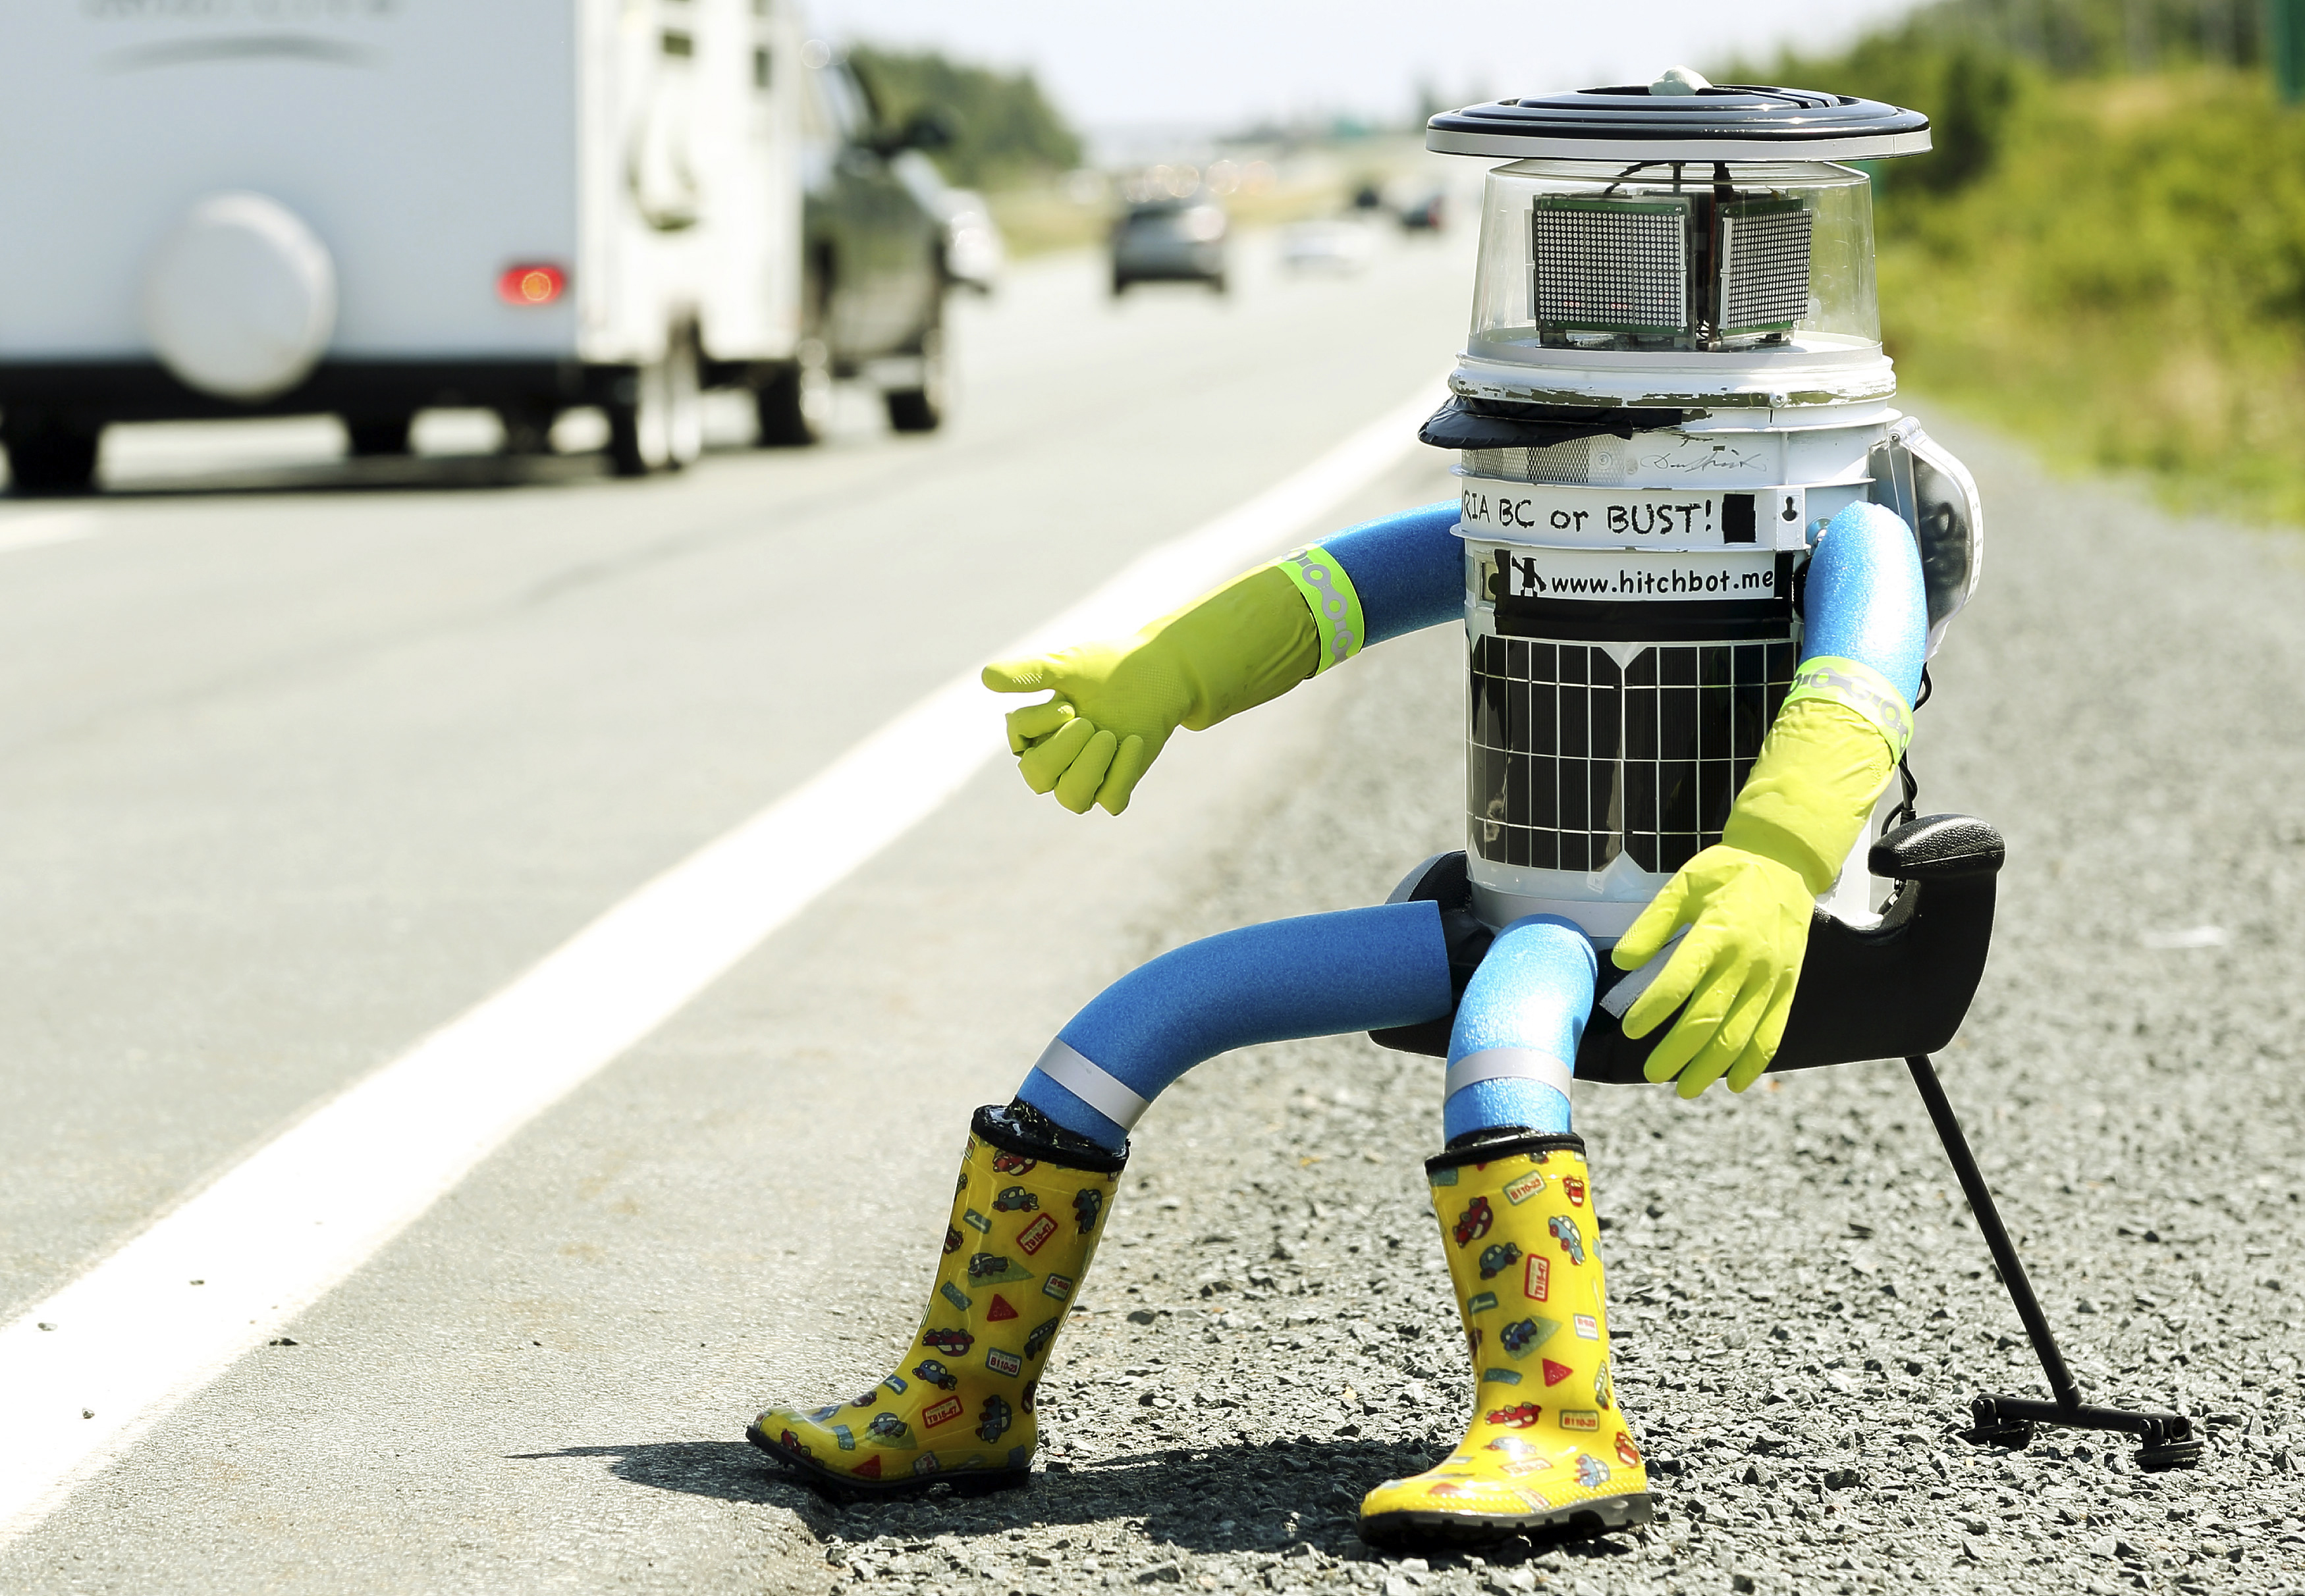 Hitchhiking Robot That Crossed Nations Fails to Last 2 Weeks in U.S.